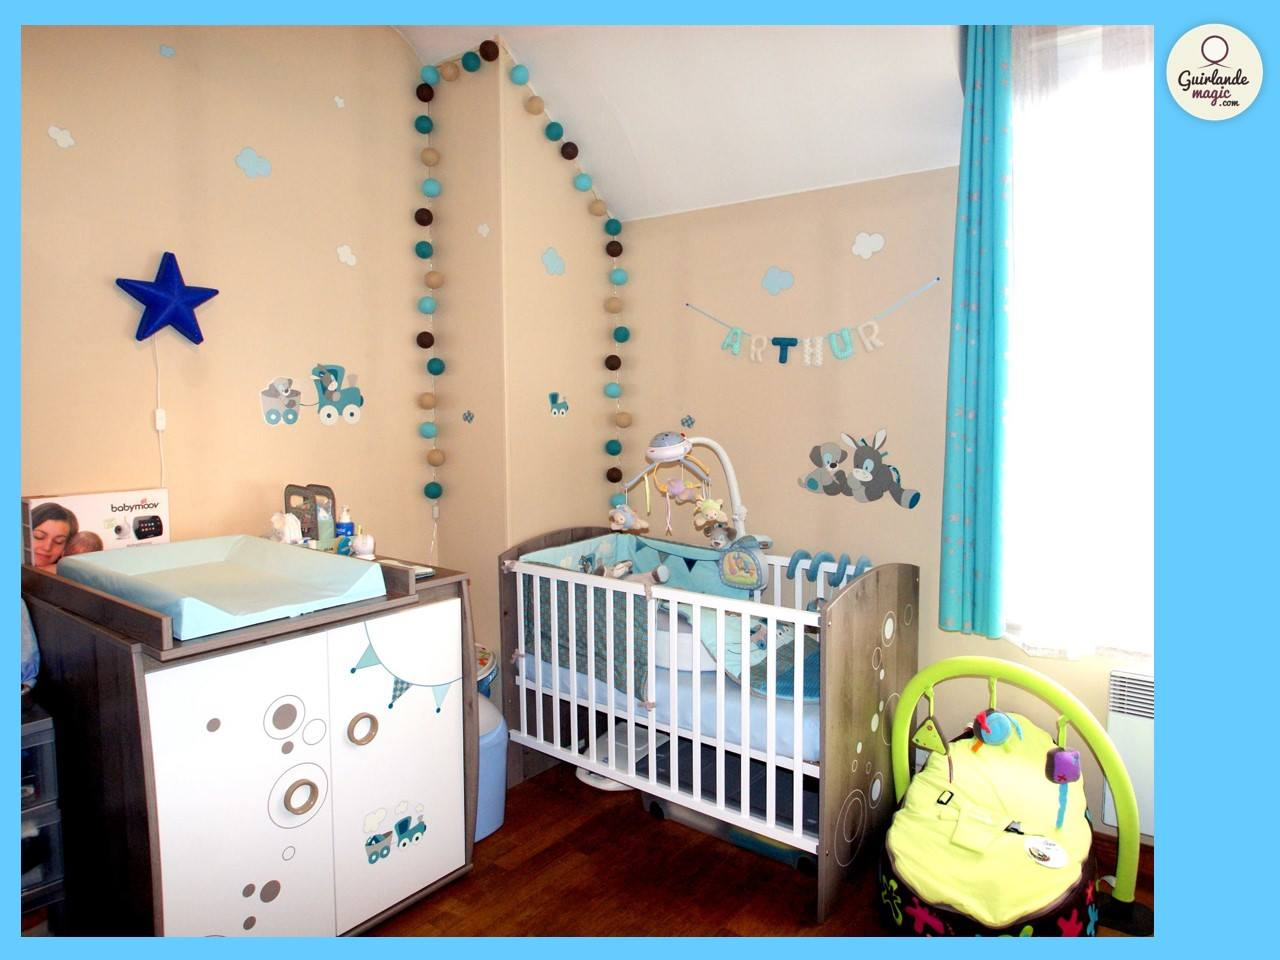 Agreable Deco Lumineuse Chambre Bebe